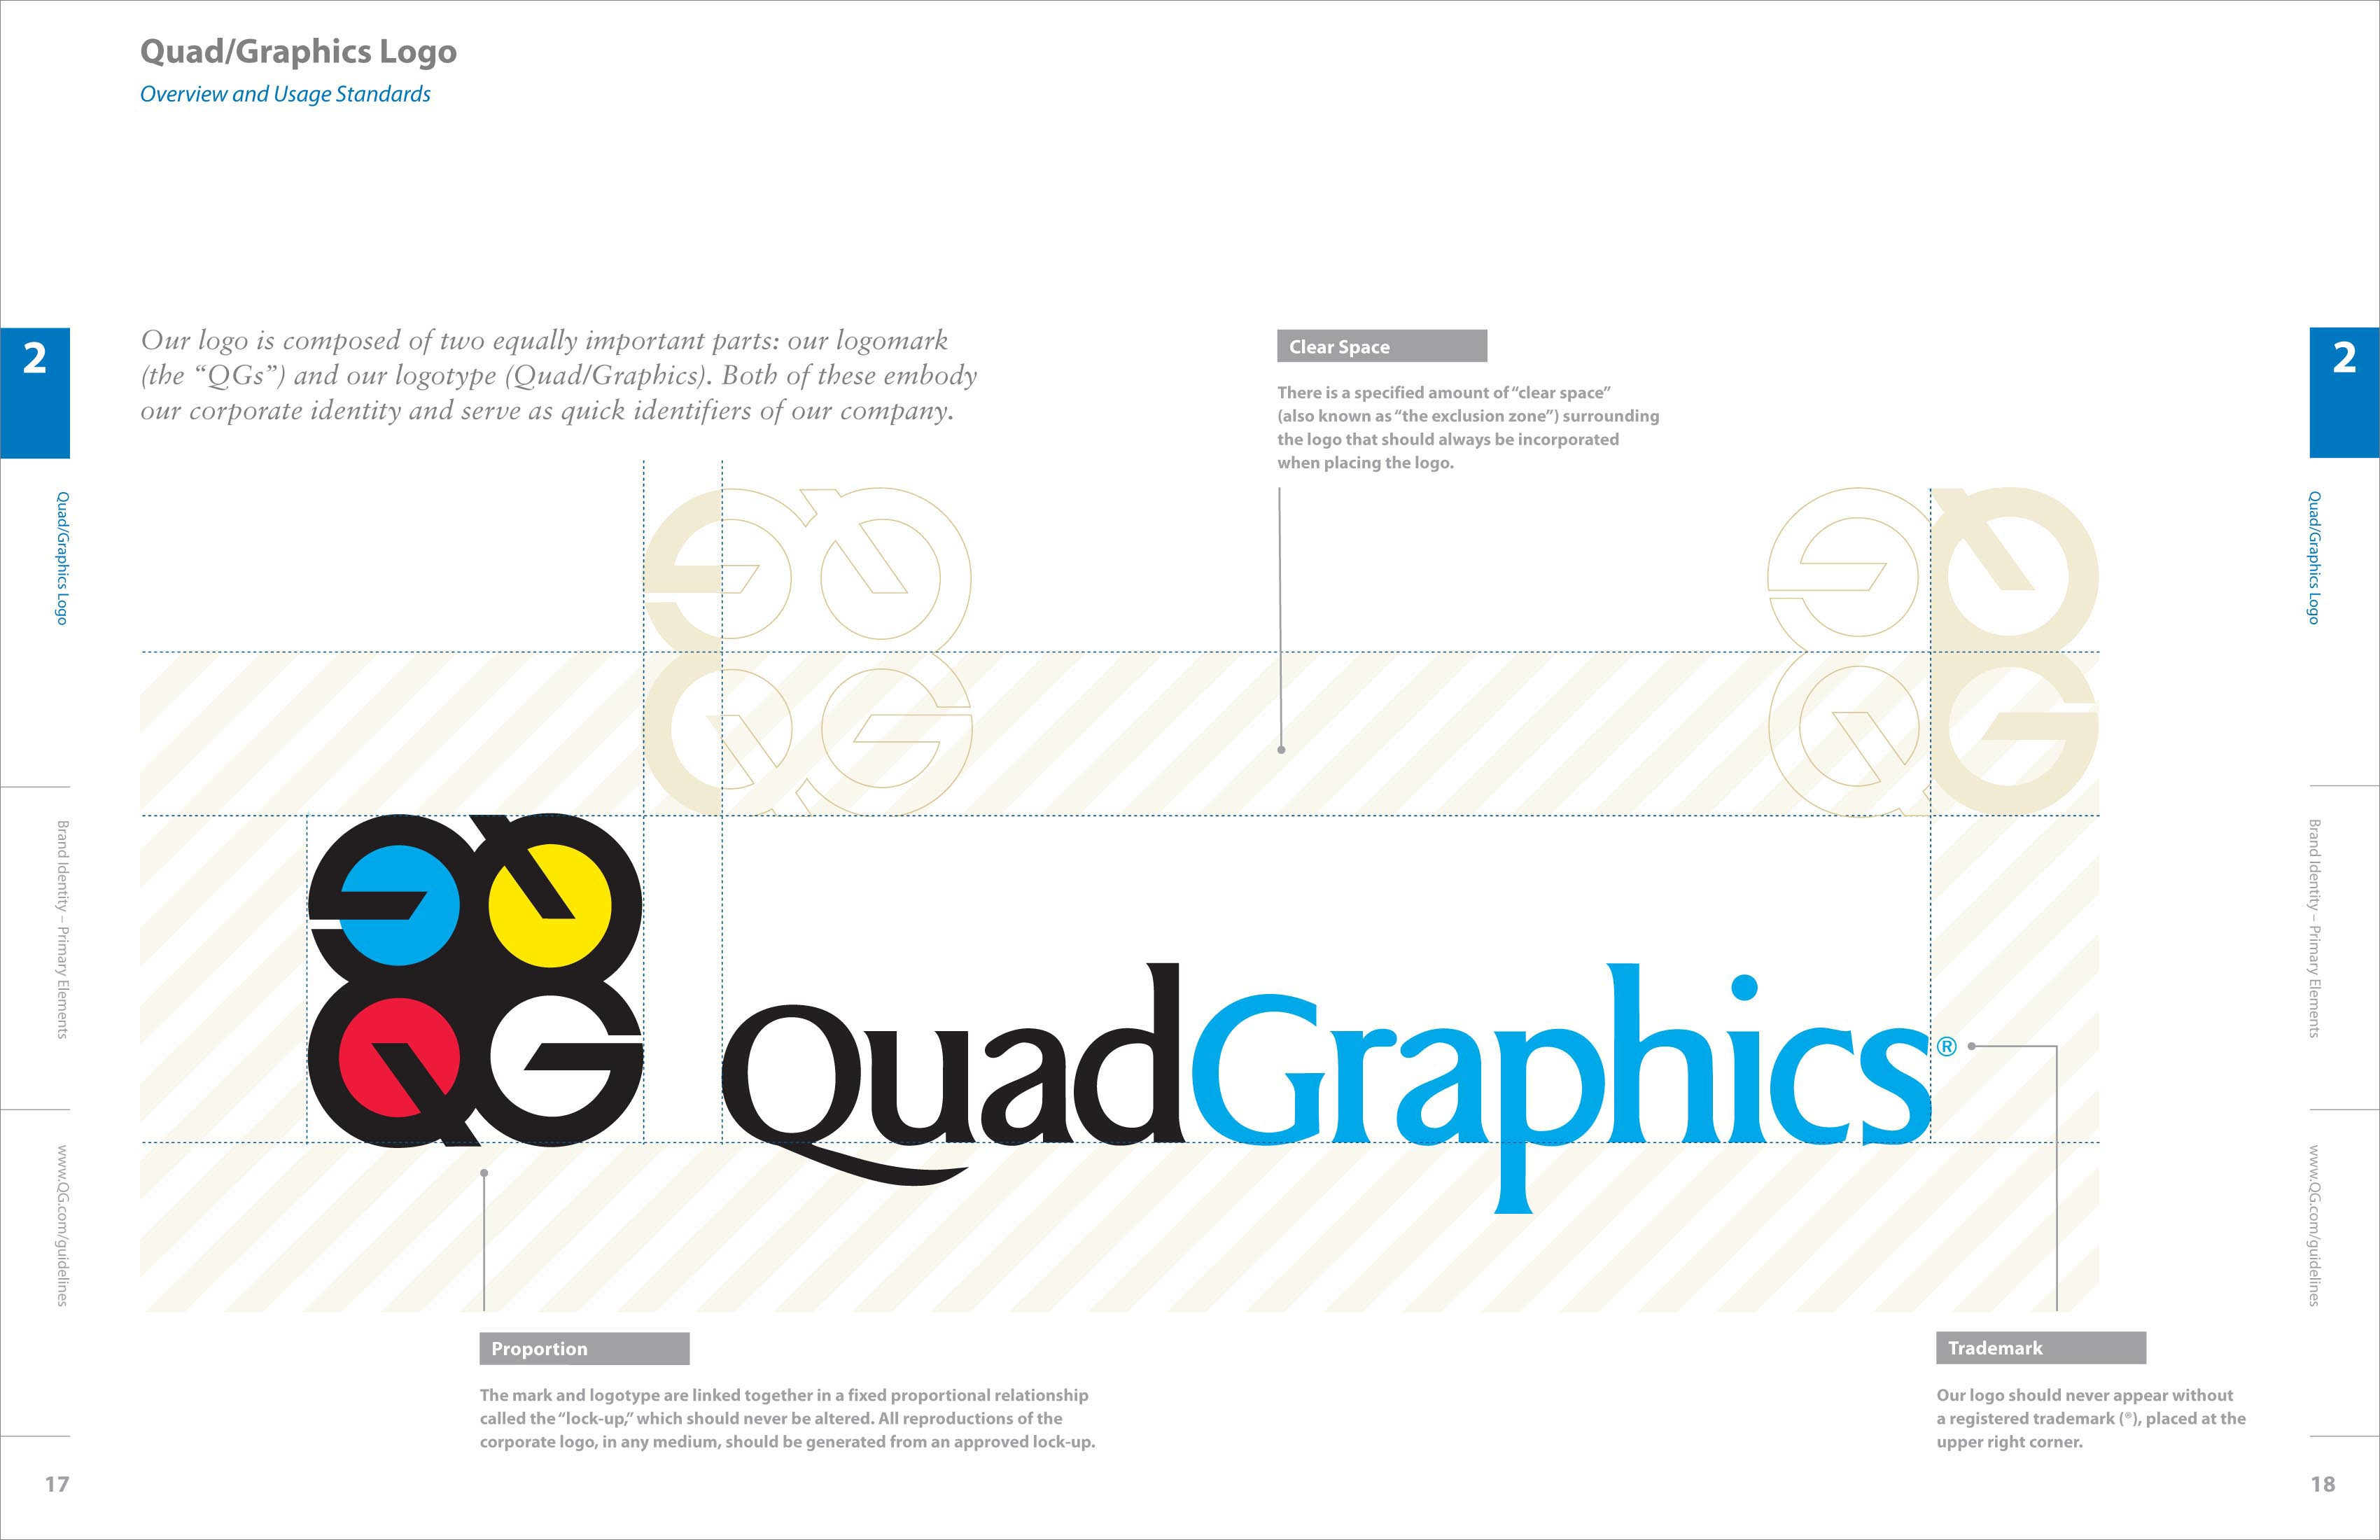 Quad/Graphics, Branding, Brand Design, Collateral, Corporate Communications, Wayfinding, Signage